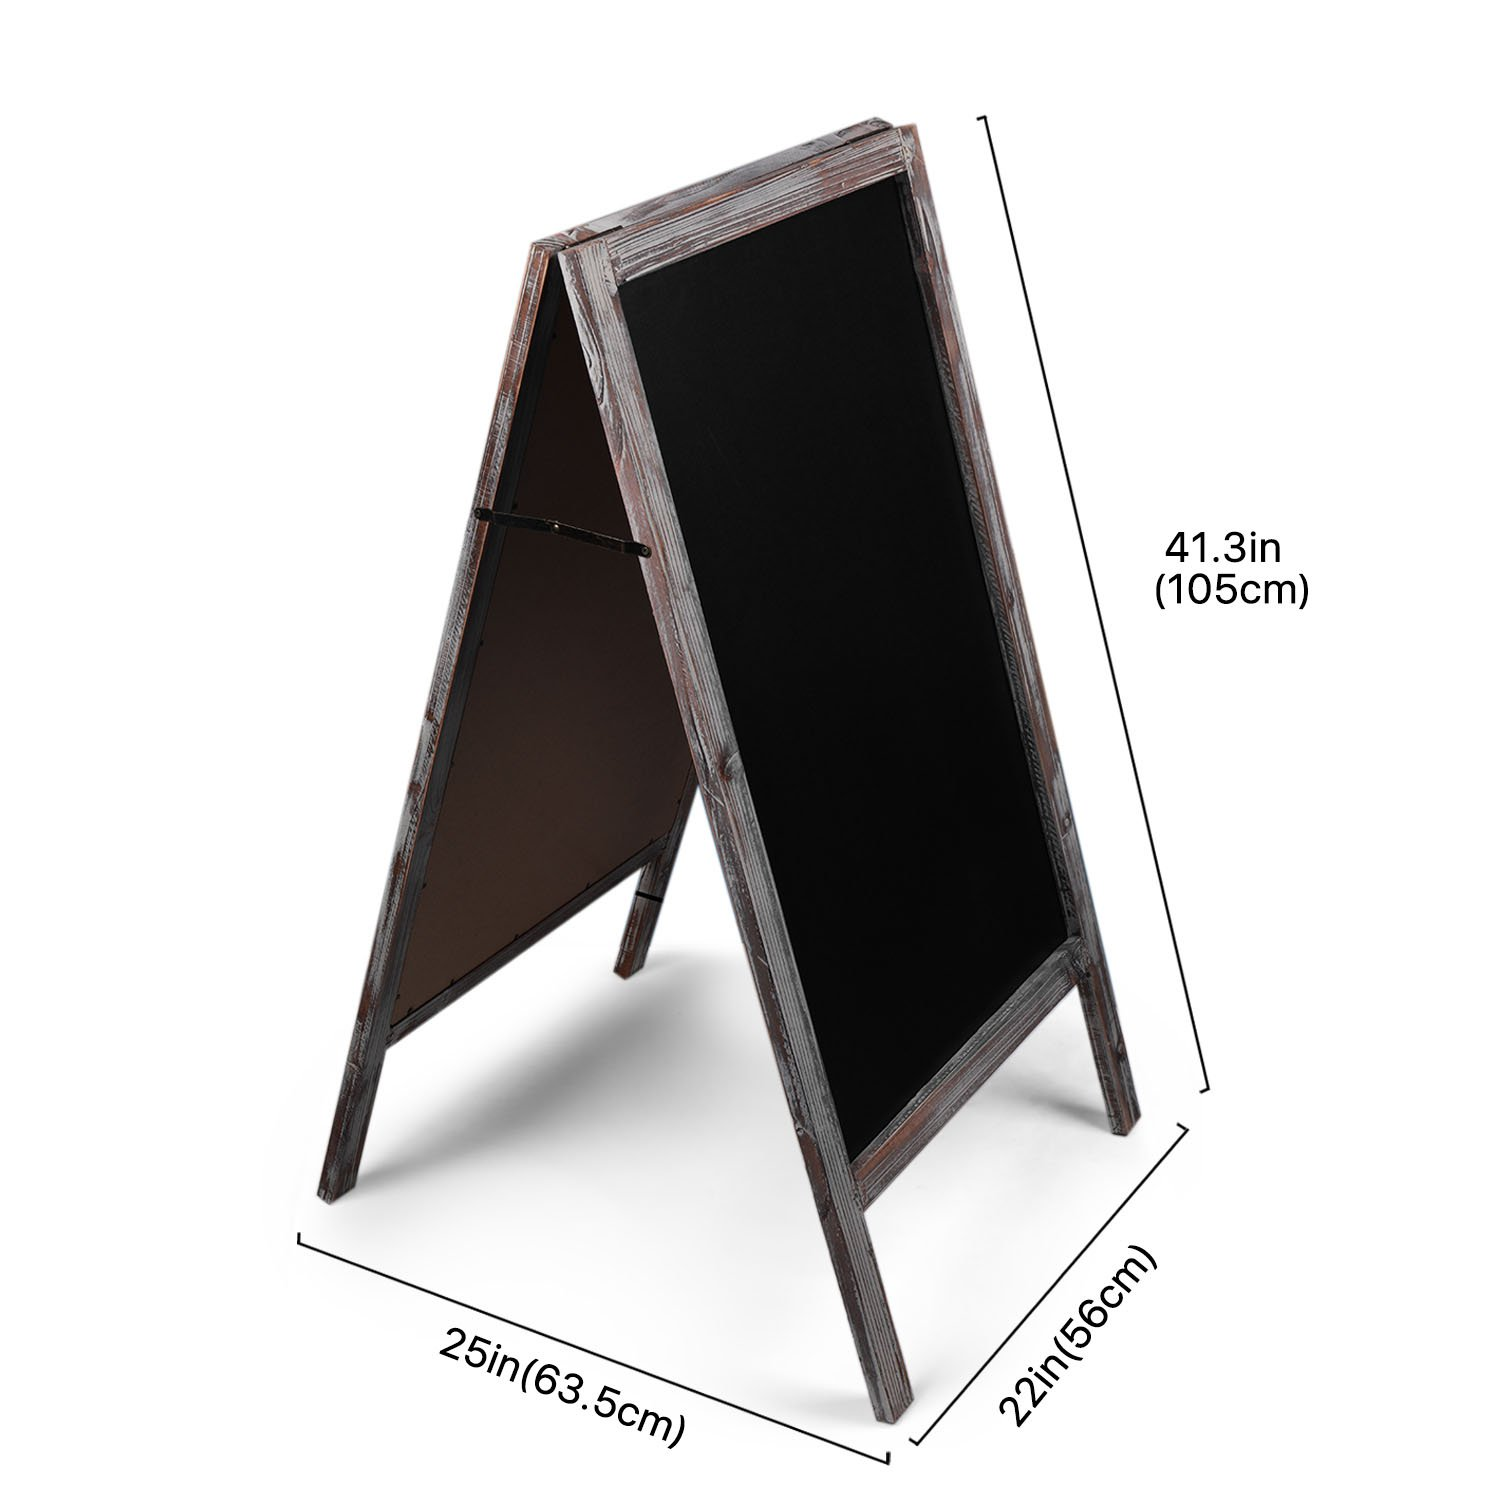 Chalkboards Office Products Flexzion A Frame Chalkboard Sign Rustic Wooden Sidewalk Easel Chalk Stand 41â Freestanding Sturdy Sandwich Board Double Sided Message Display Vintage Torched Restaurant Chalkboard For Cafe Bar